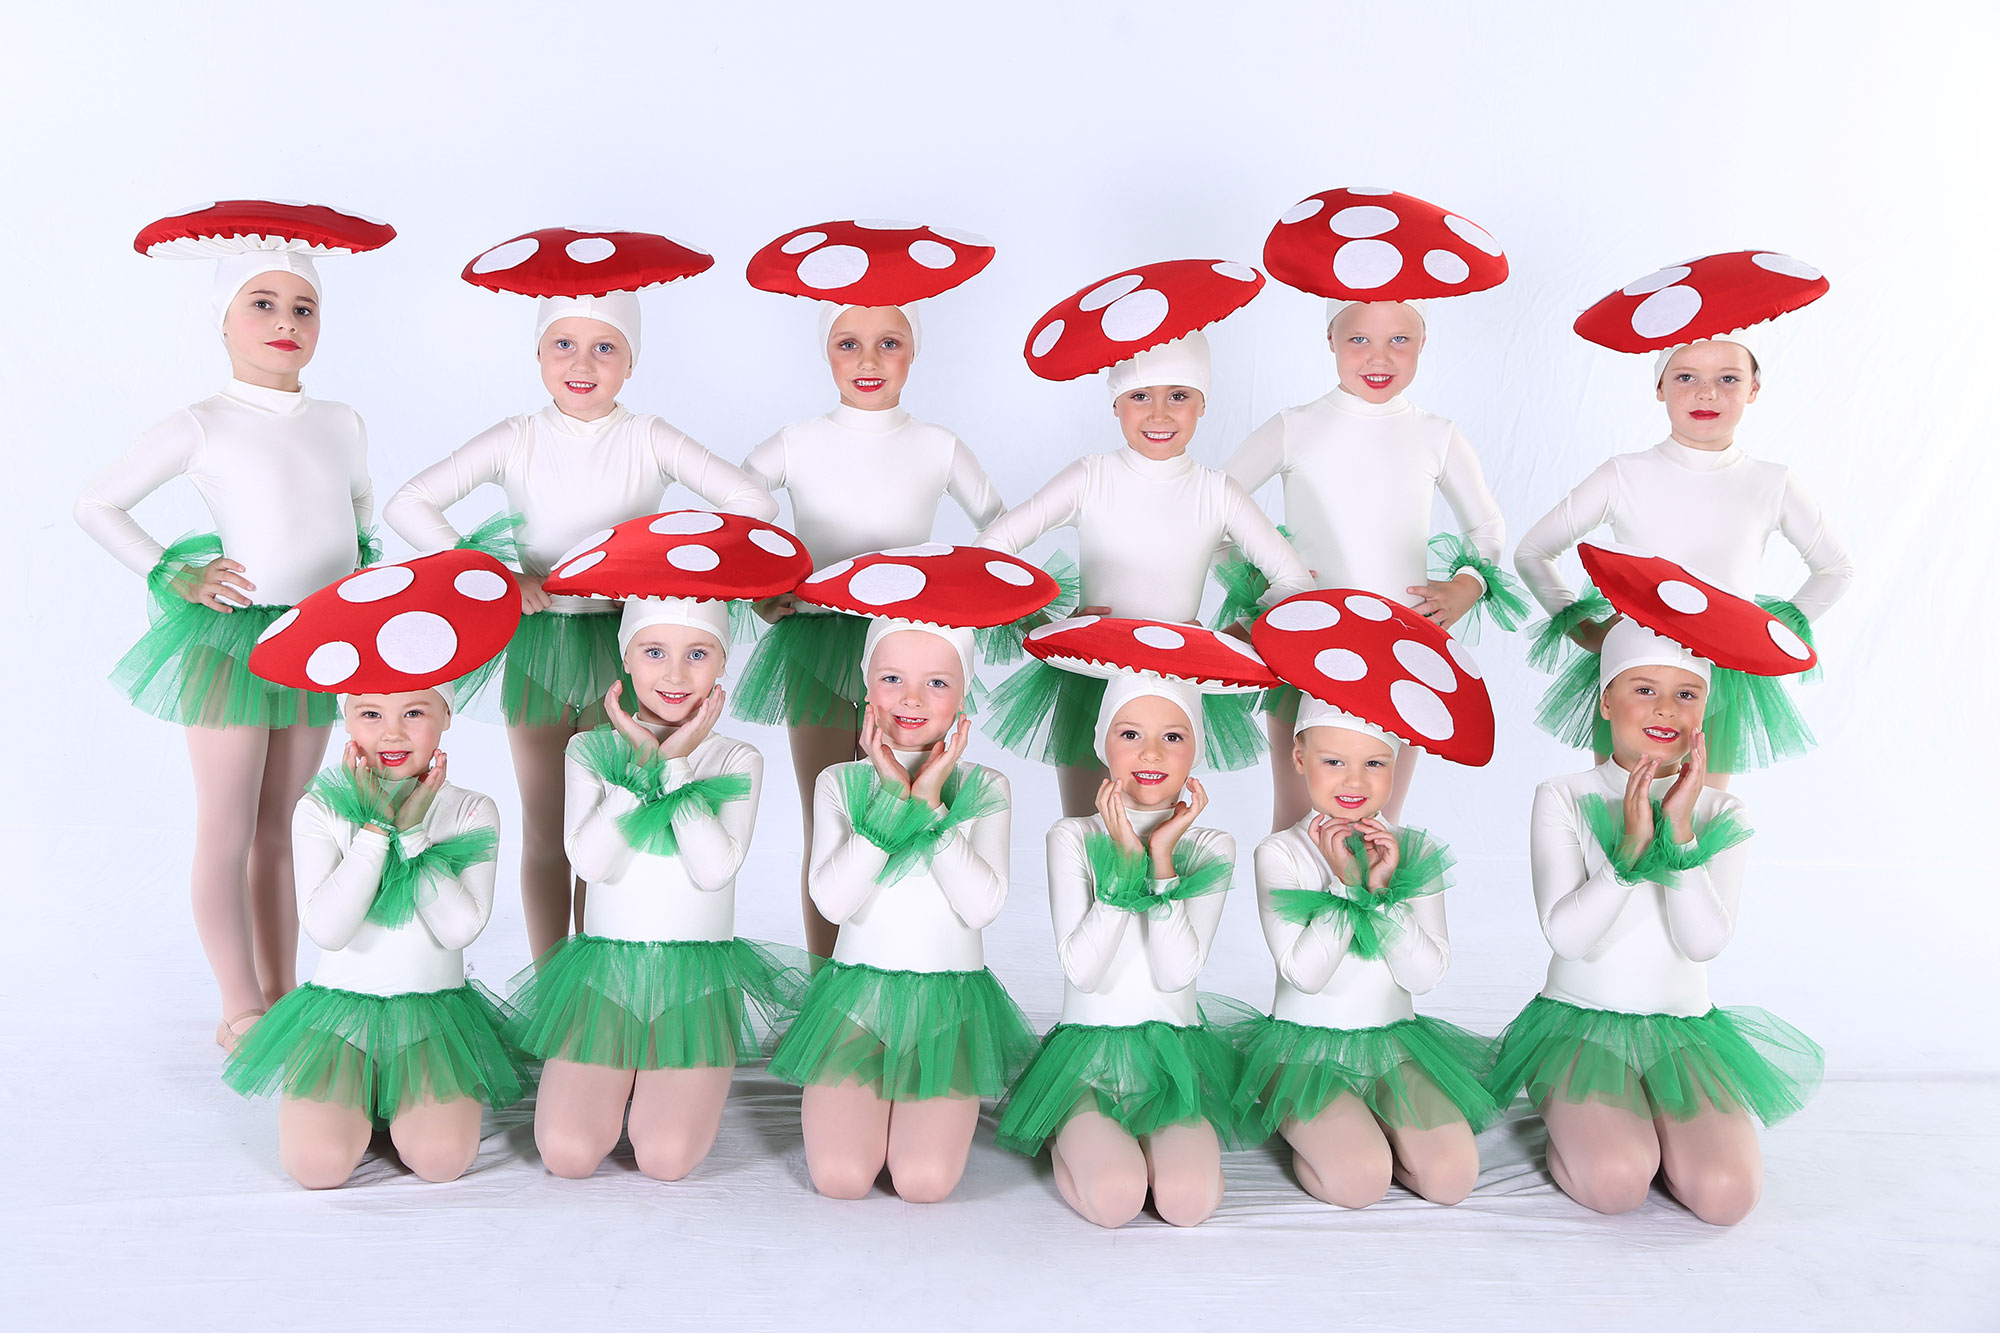 dancers dressed as mushrooms